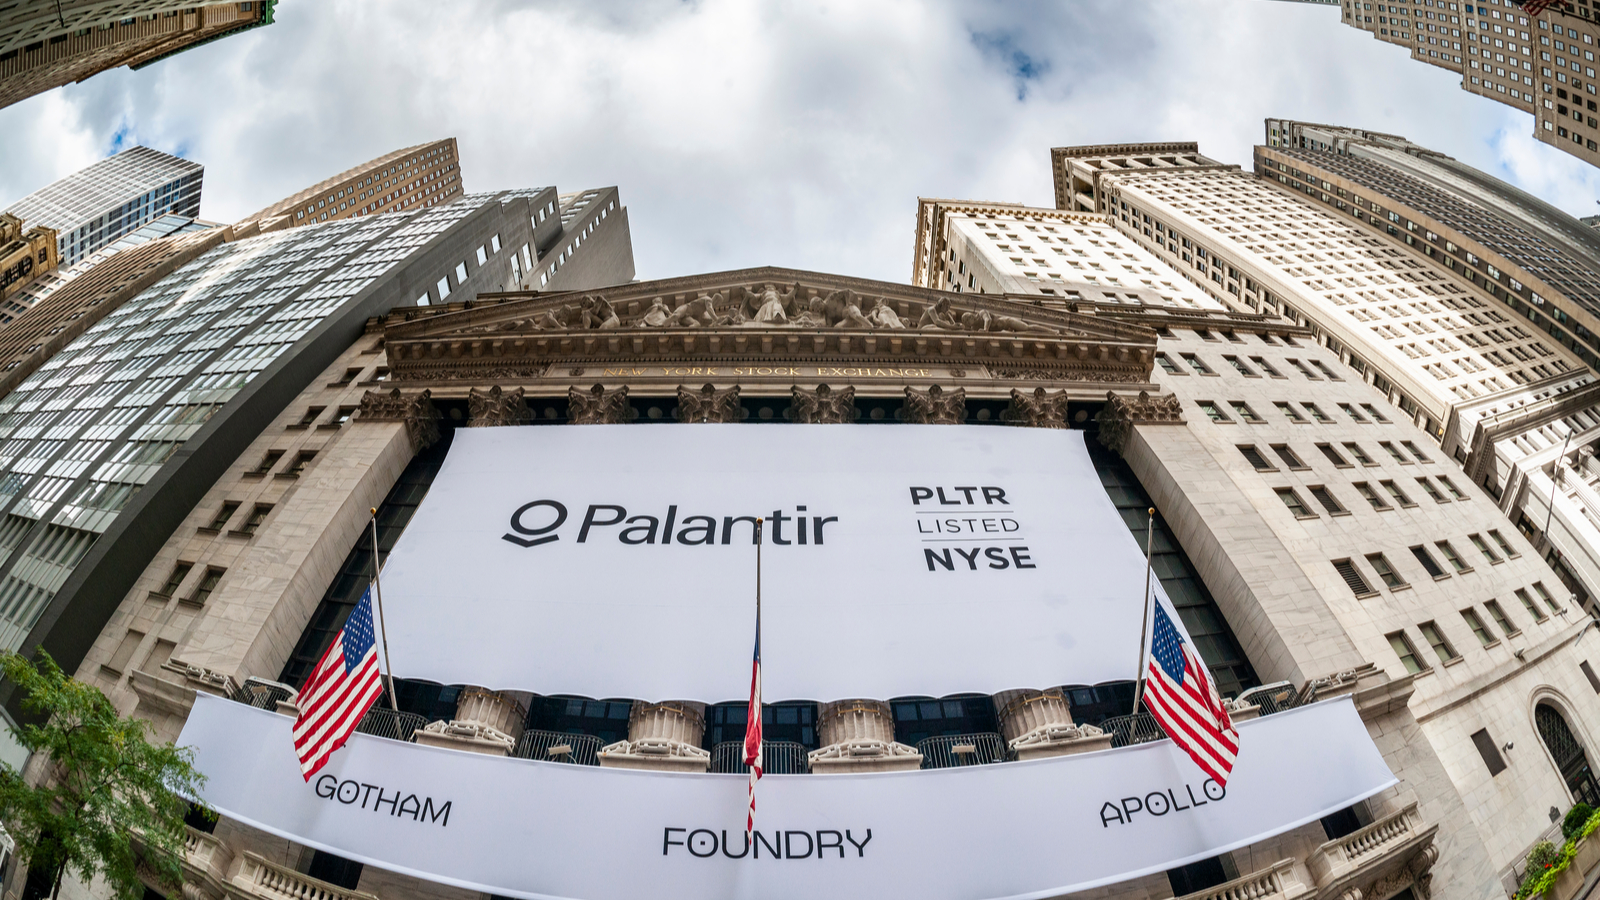 More Deals Should Lead to More Gains for Palantir